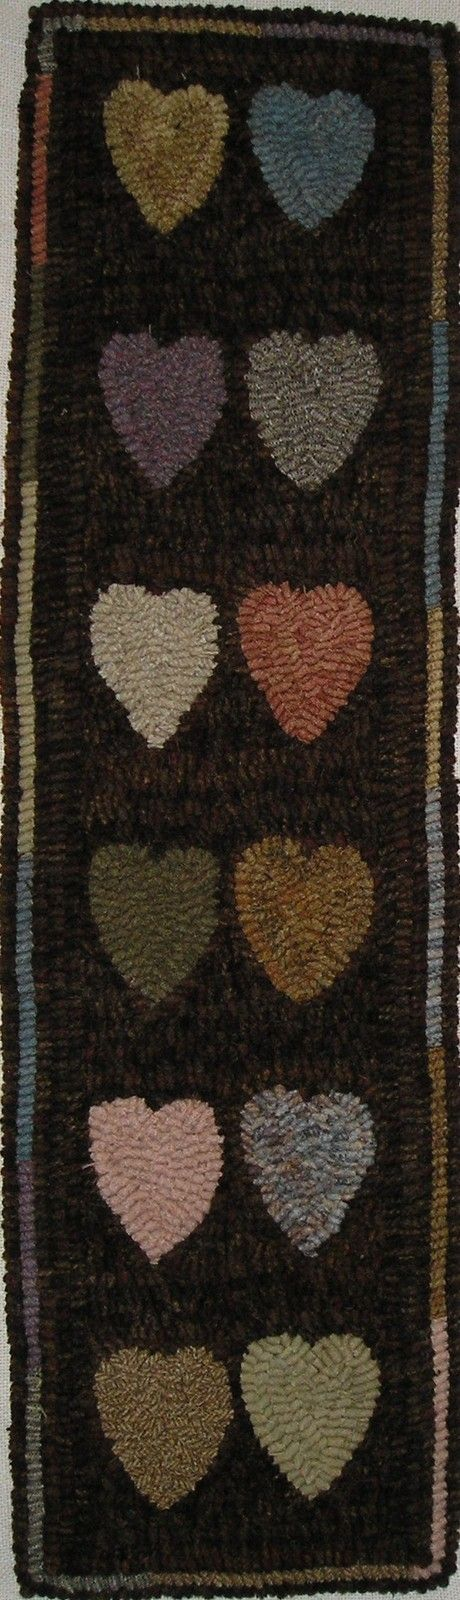 Hand Hooked Rug Early Style Primitive Hit and Miss Hearts Hooked Rug | eBay   sold    222.00.       ...~♥~